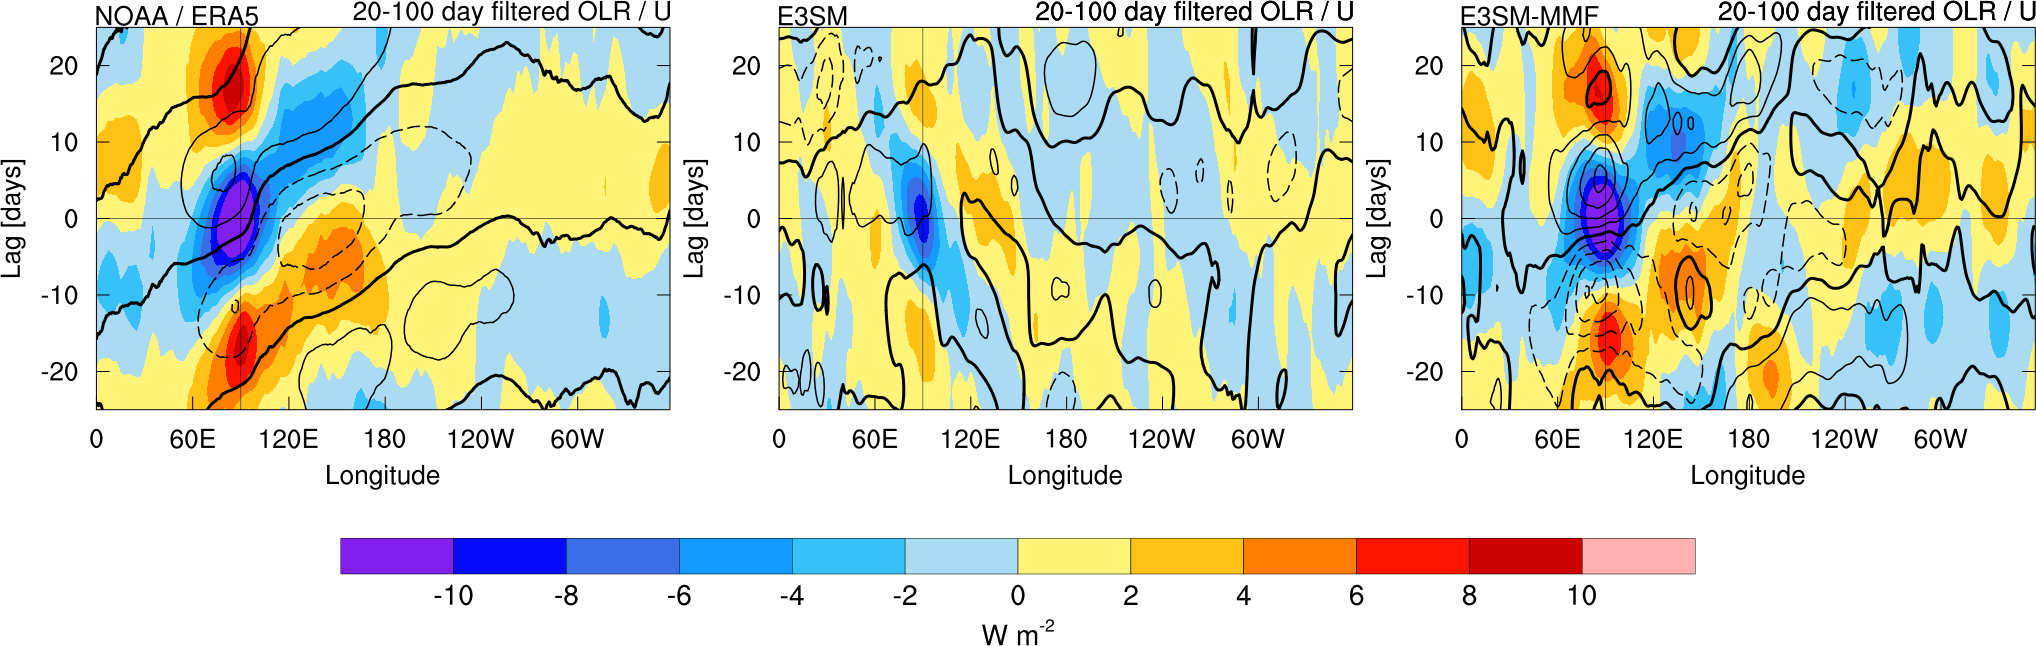 Lagged all‐season regression of outgoing longwave radiation